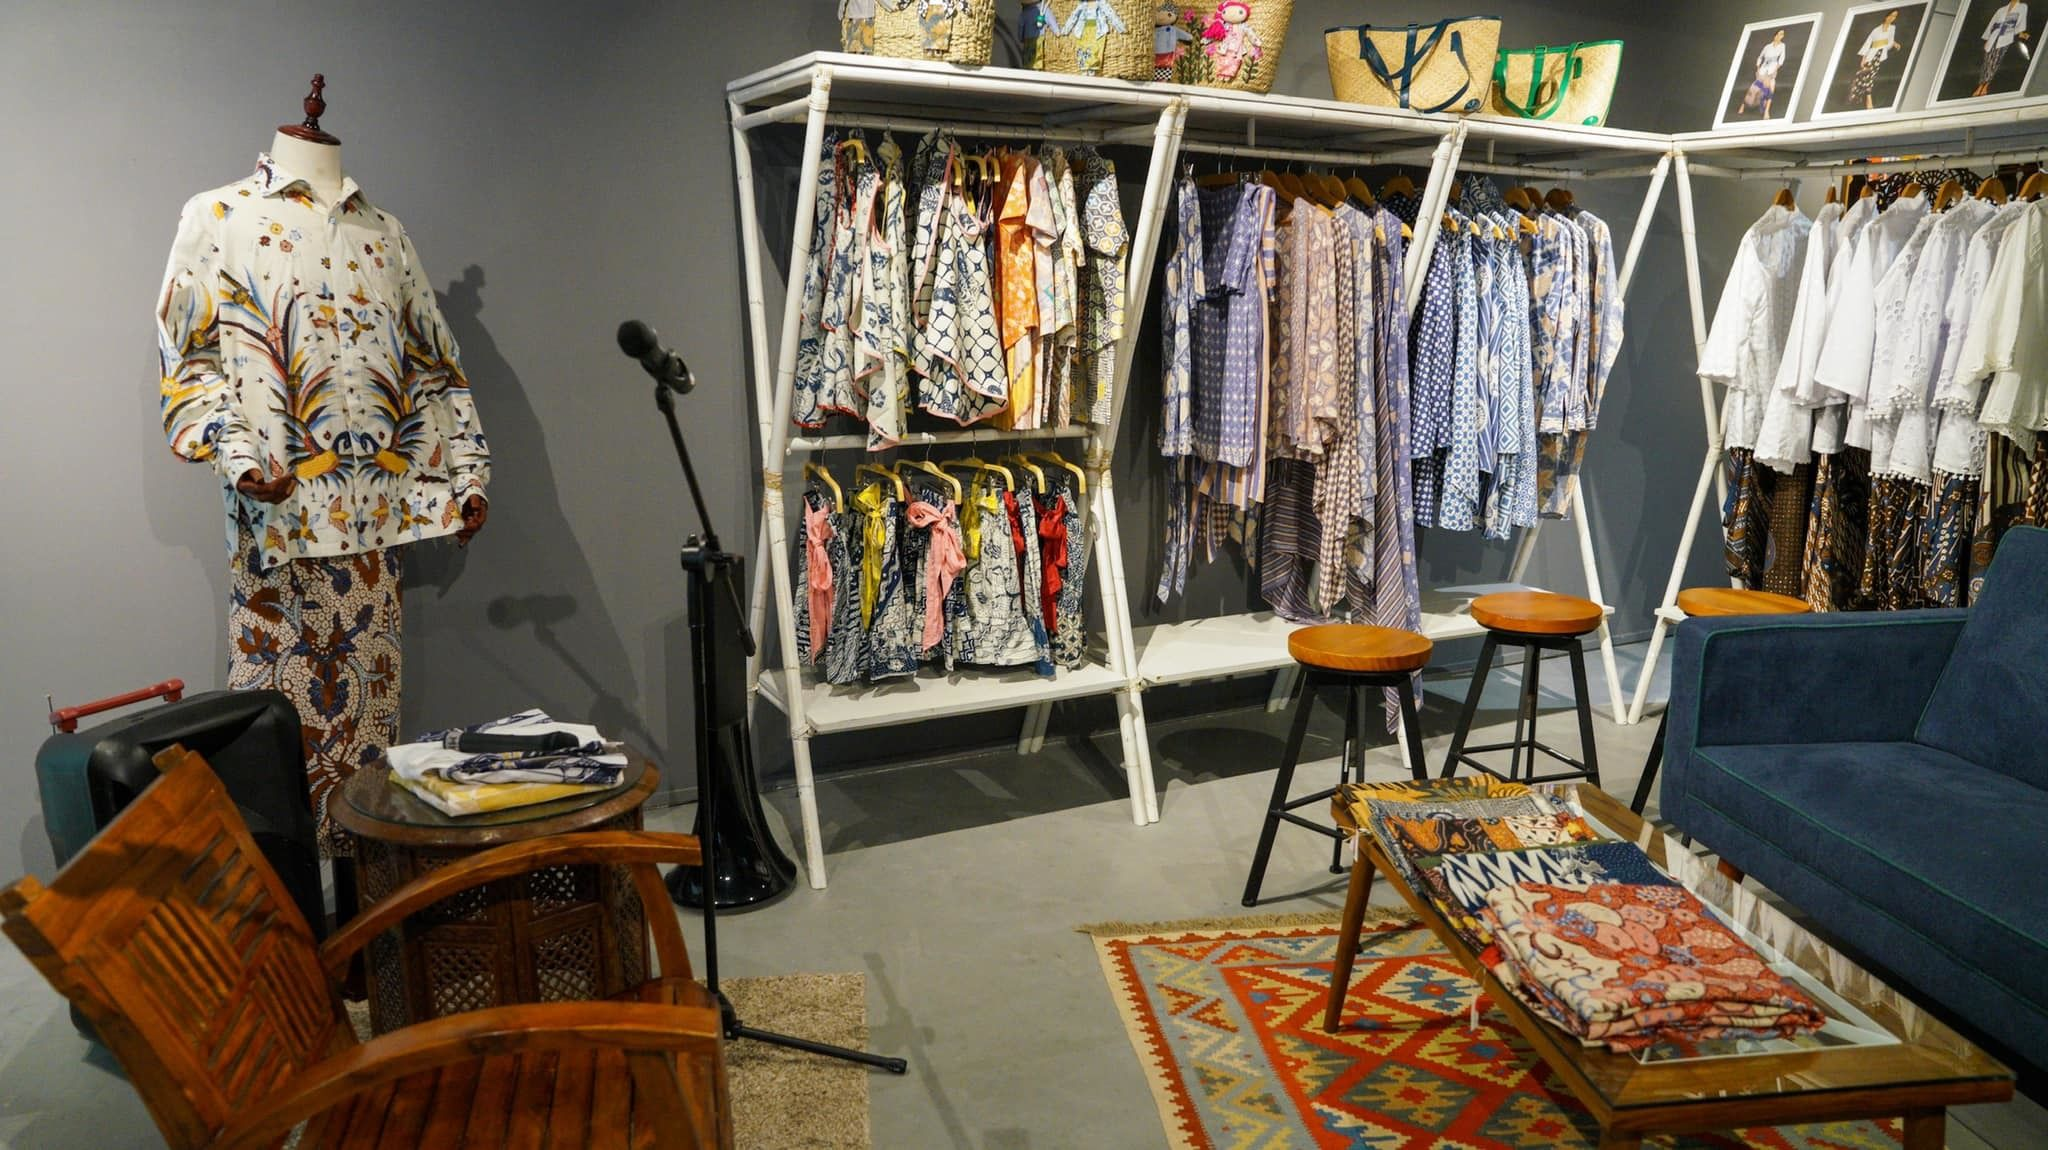 50 Best Shops In Singapore In 2020 Cool Store Singapore Shopping